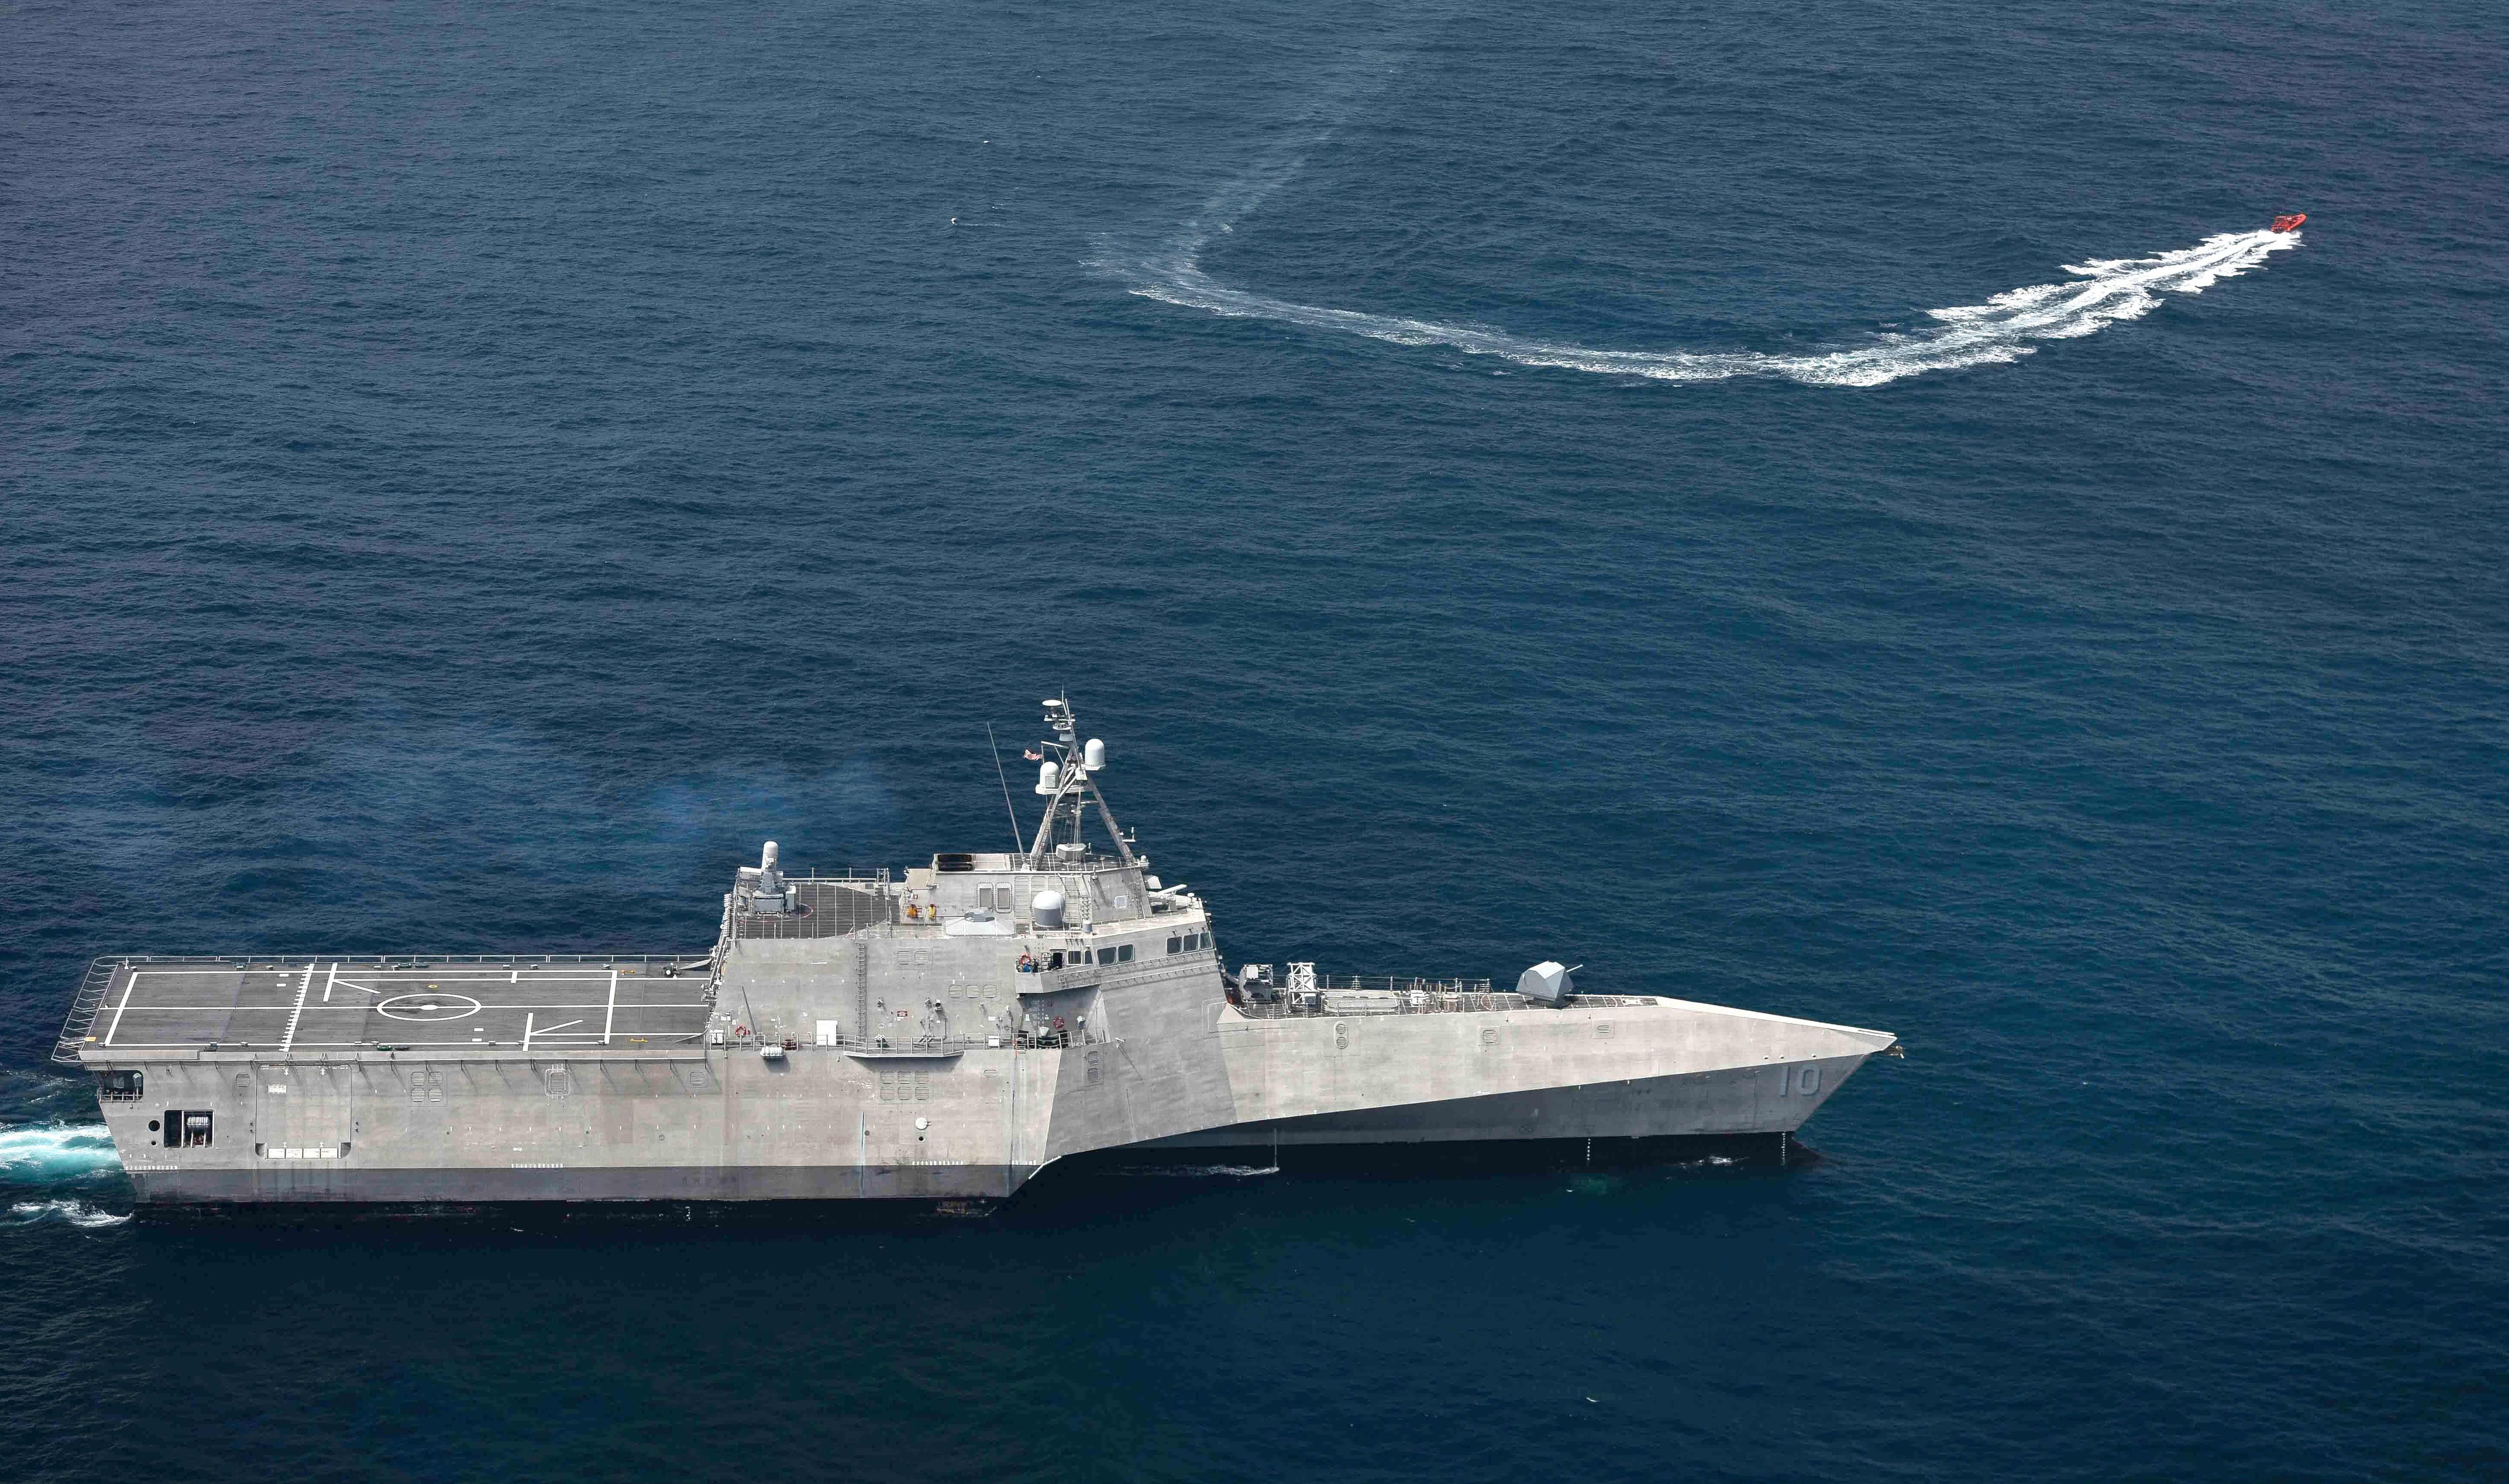 The State of LCS: Navy Moving to Add Firepower, Capability